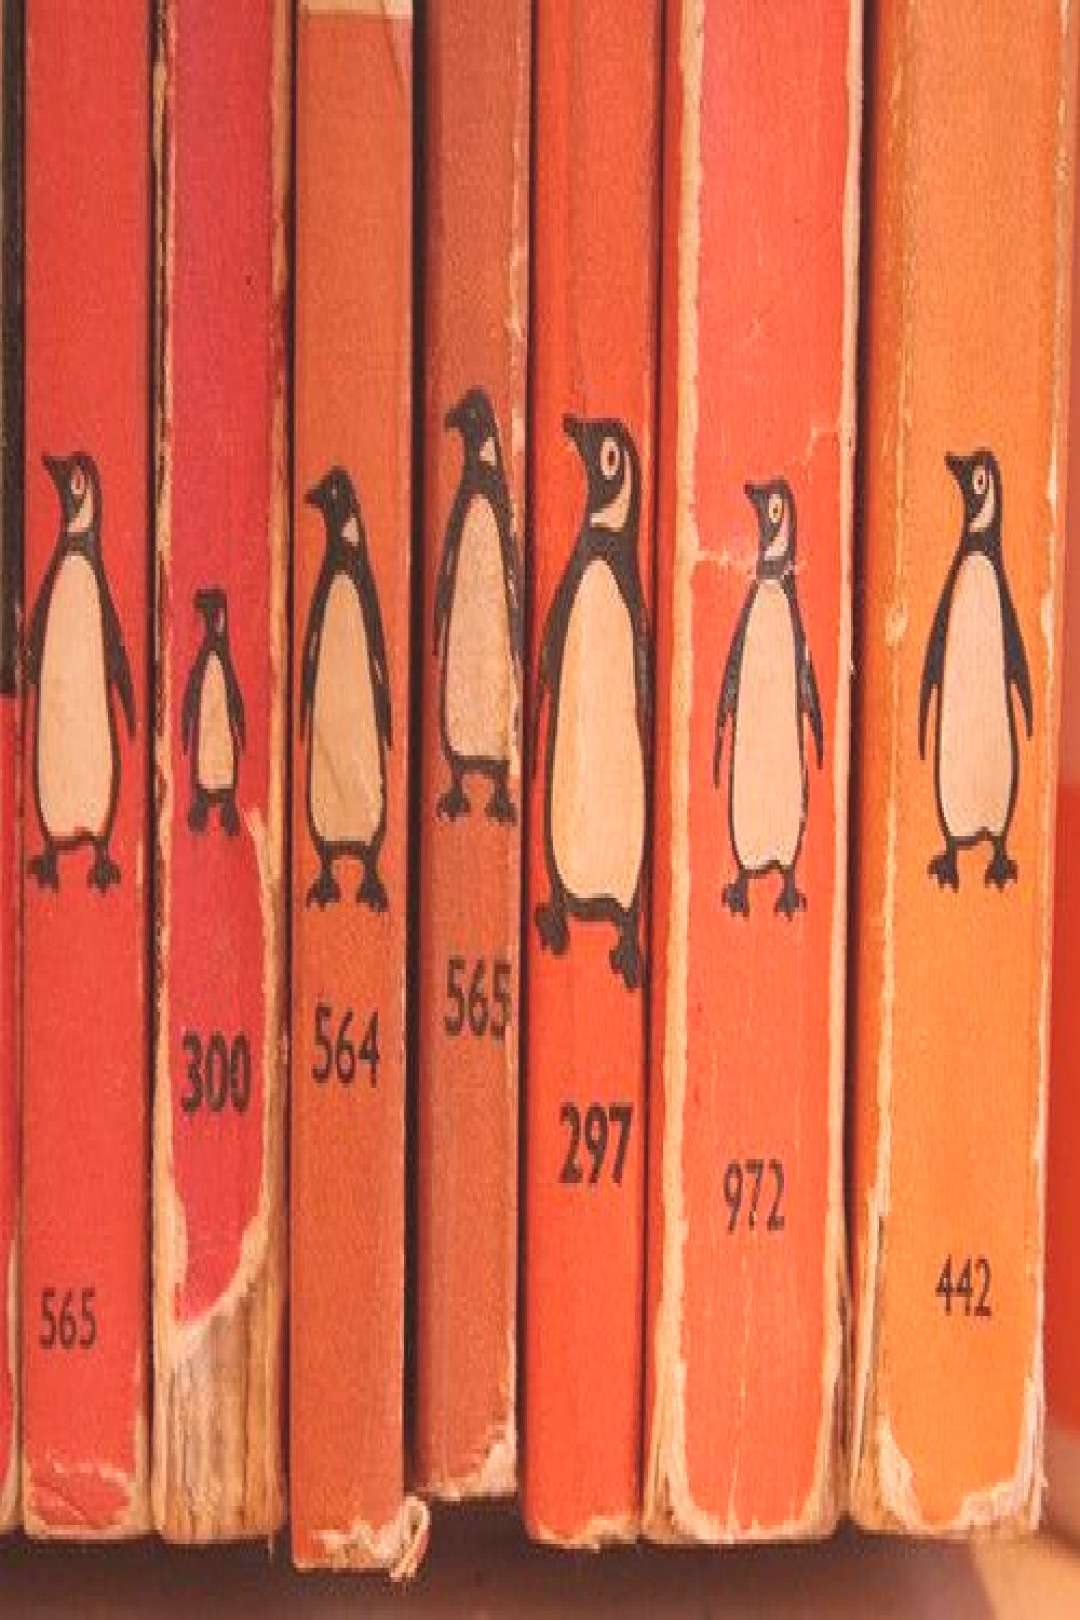 penguin books - rows upon rows of them in the shop - orange, green, blue, yellow, pink, white, thos